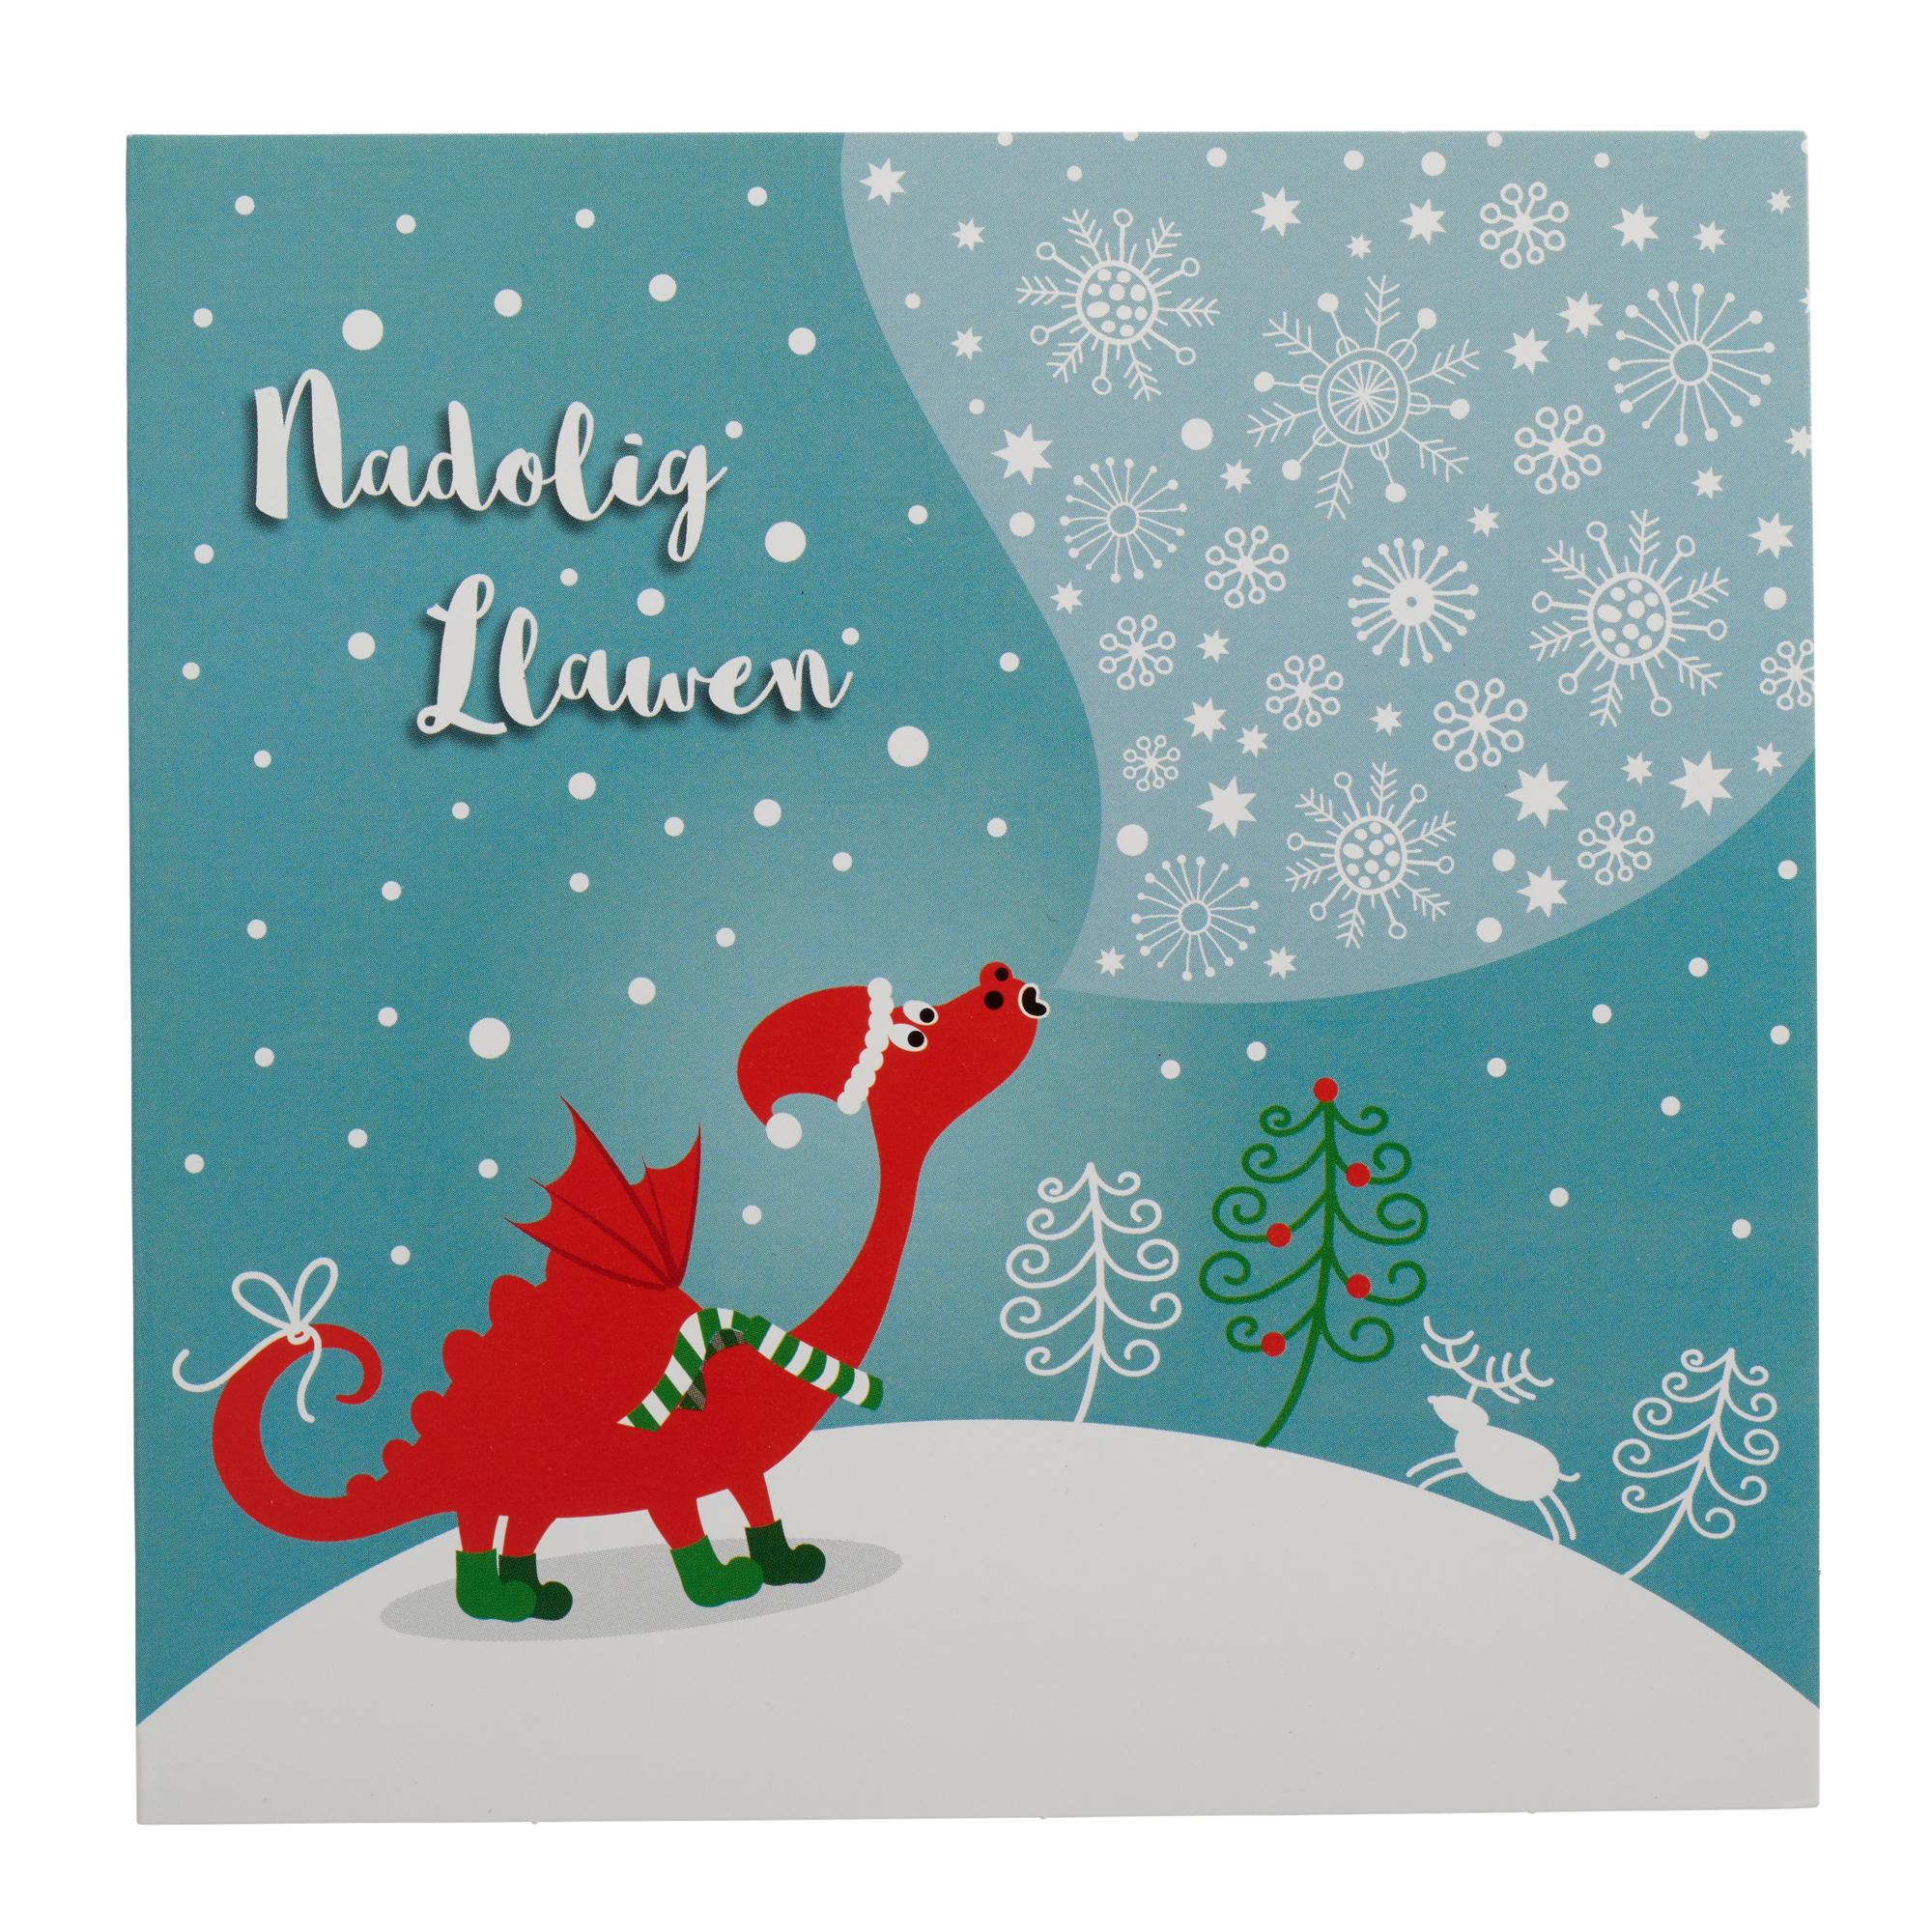 Winter dragon welsh christmas cards pack of 10 cancer research winter dragon welsh christmas cards pack of 10 m4hsunfo